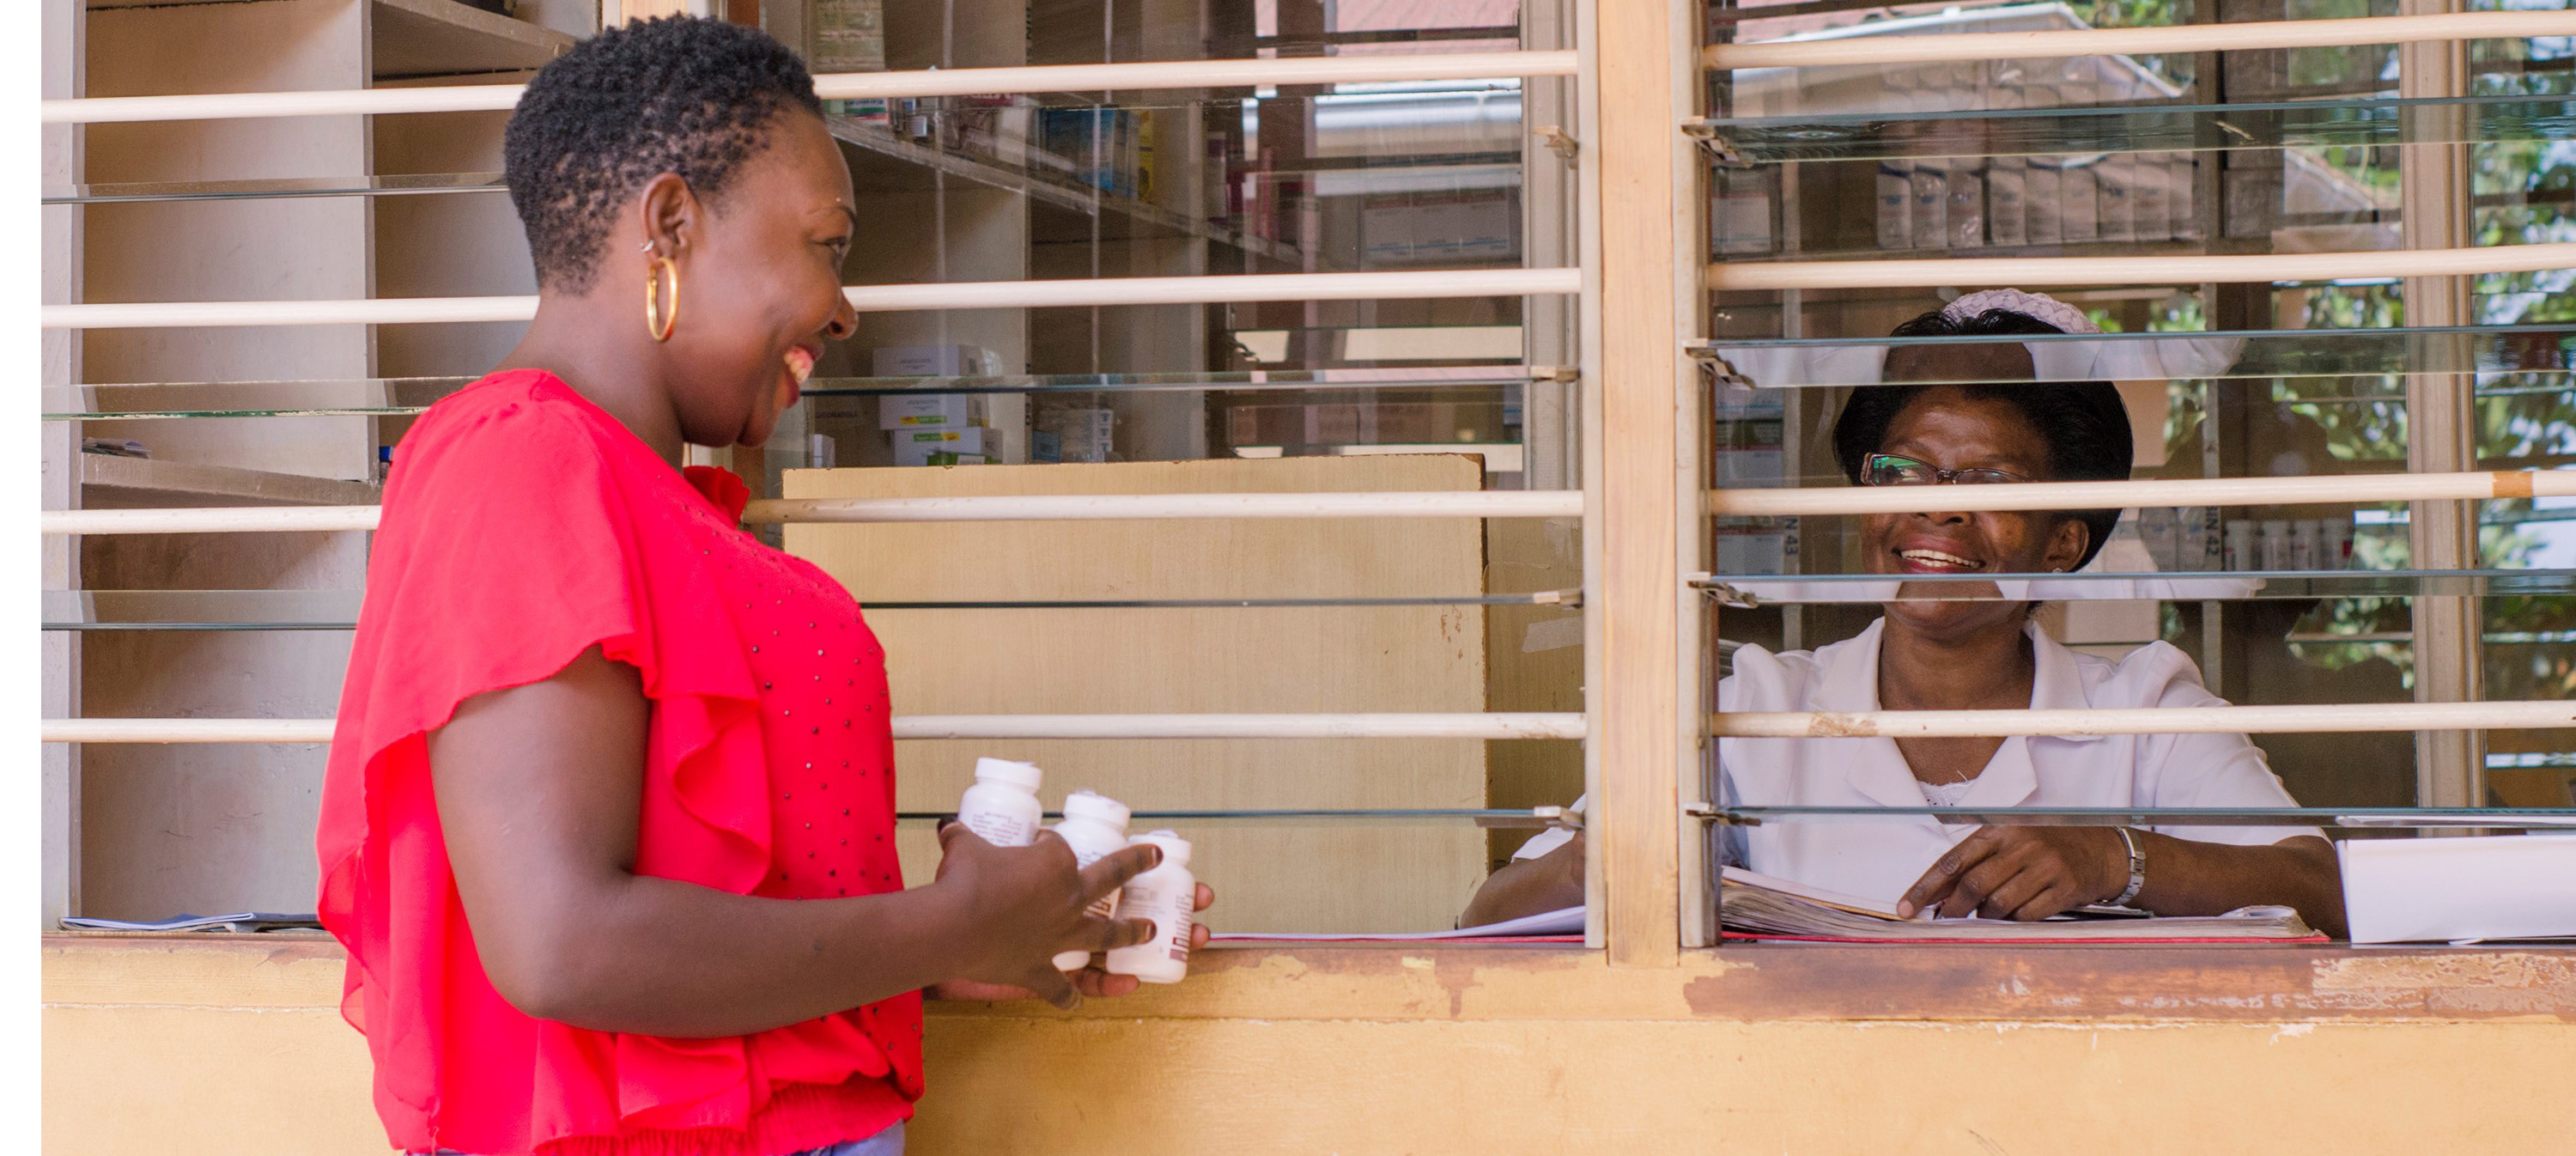 female patient holds bottles of medication as she talks with female pharmacist at health facility dispensing window